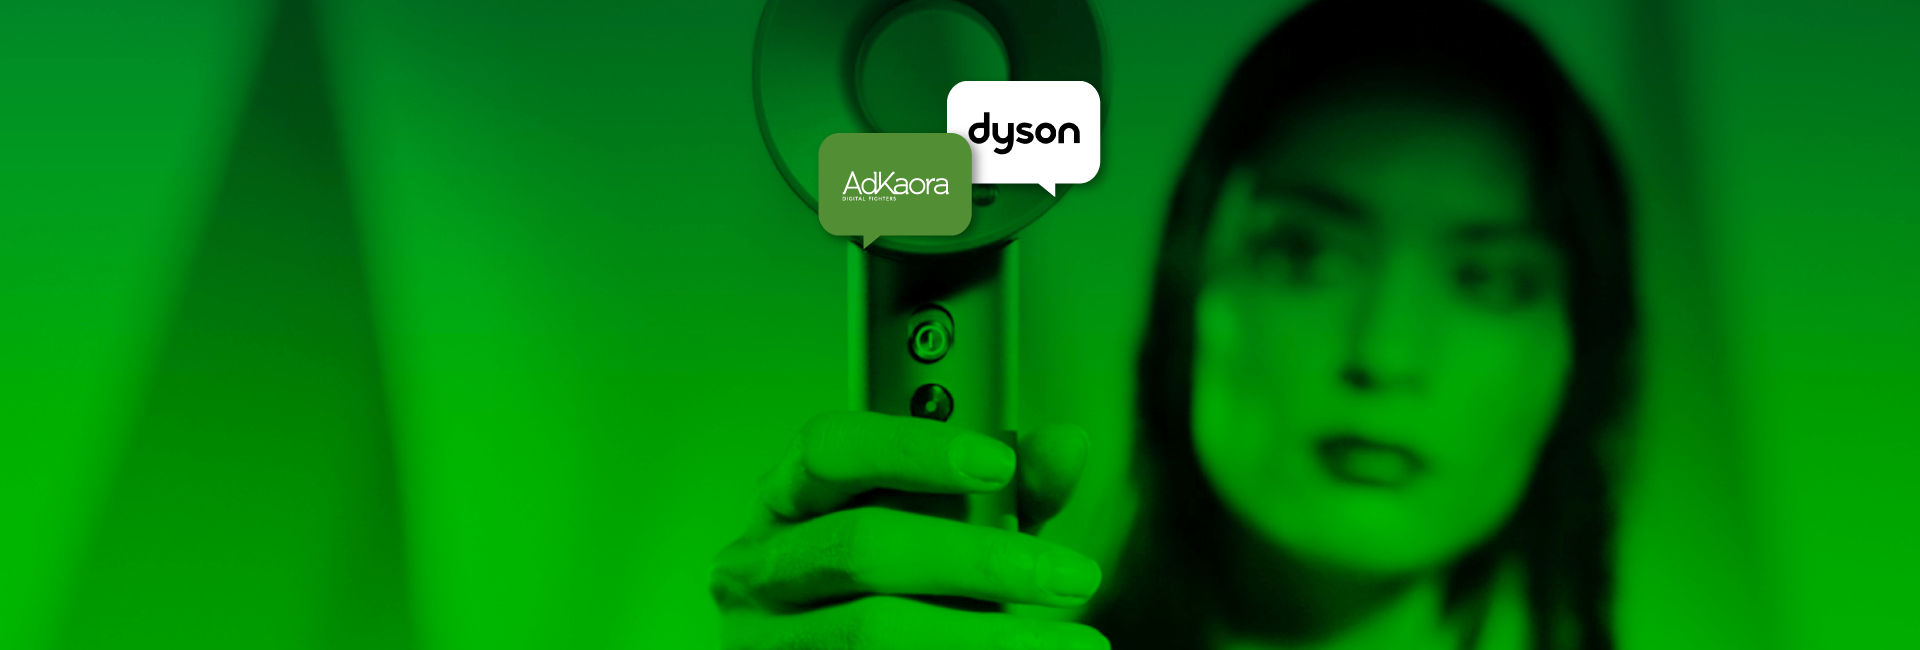 Dyson sceglie AdKaora per migliorare la customer journey con il proximity marketing